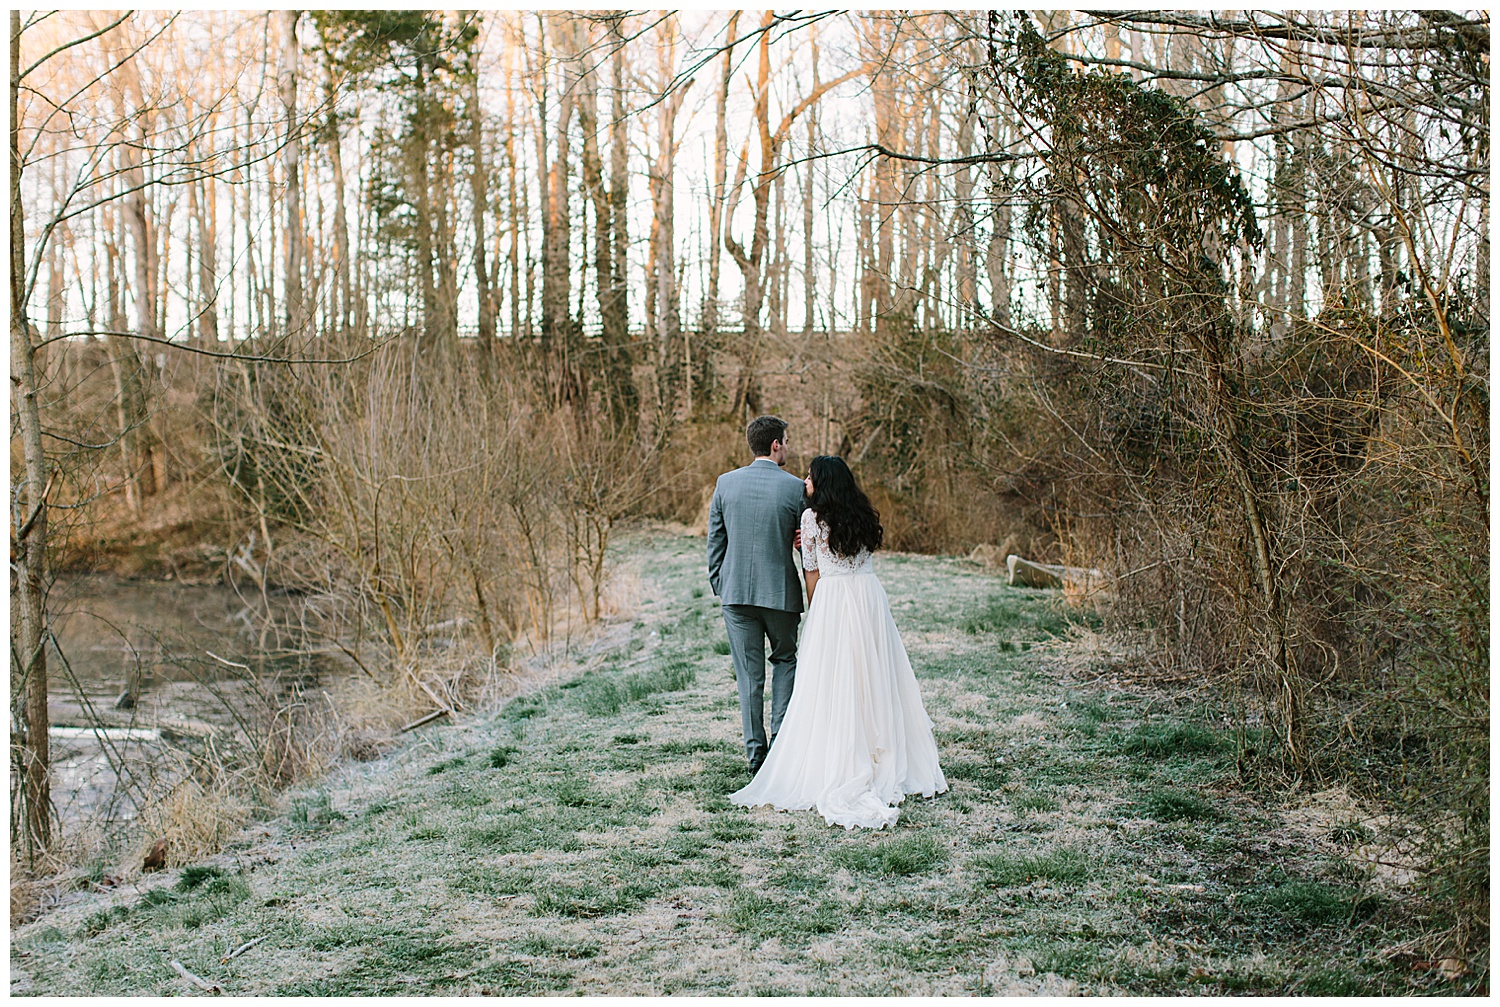 trent.and.kendra.photography.foxhollow.farm.elopement-49.jpg